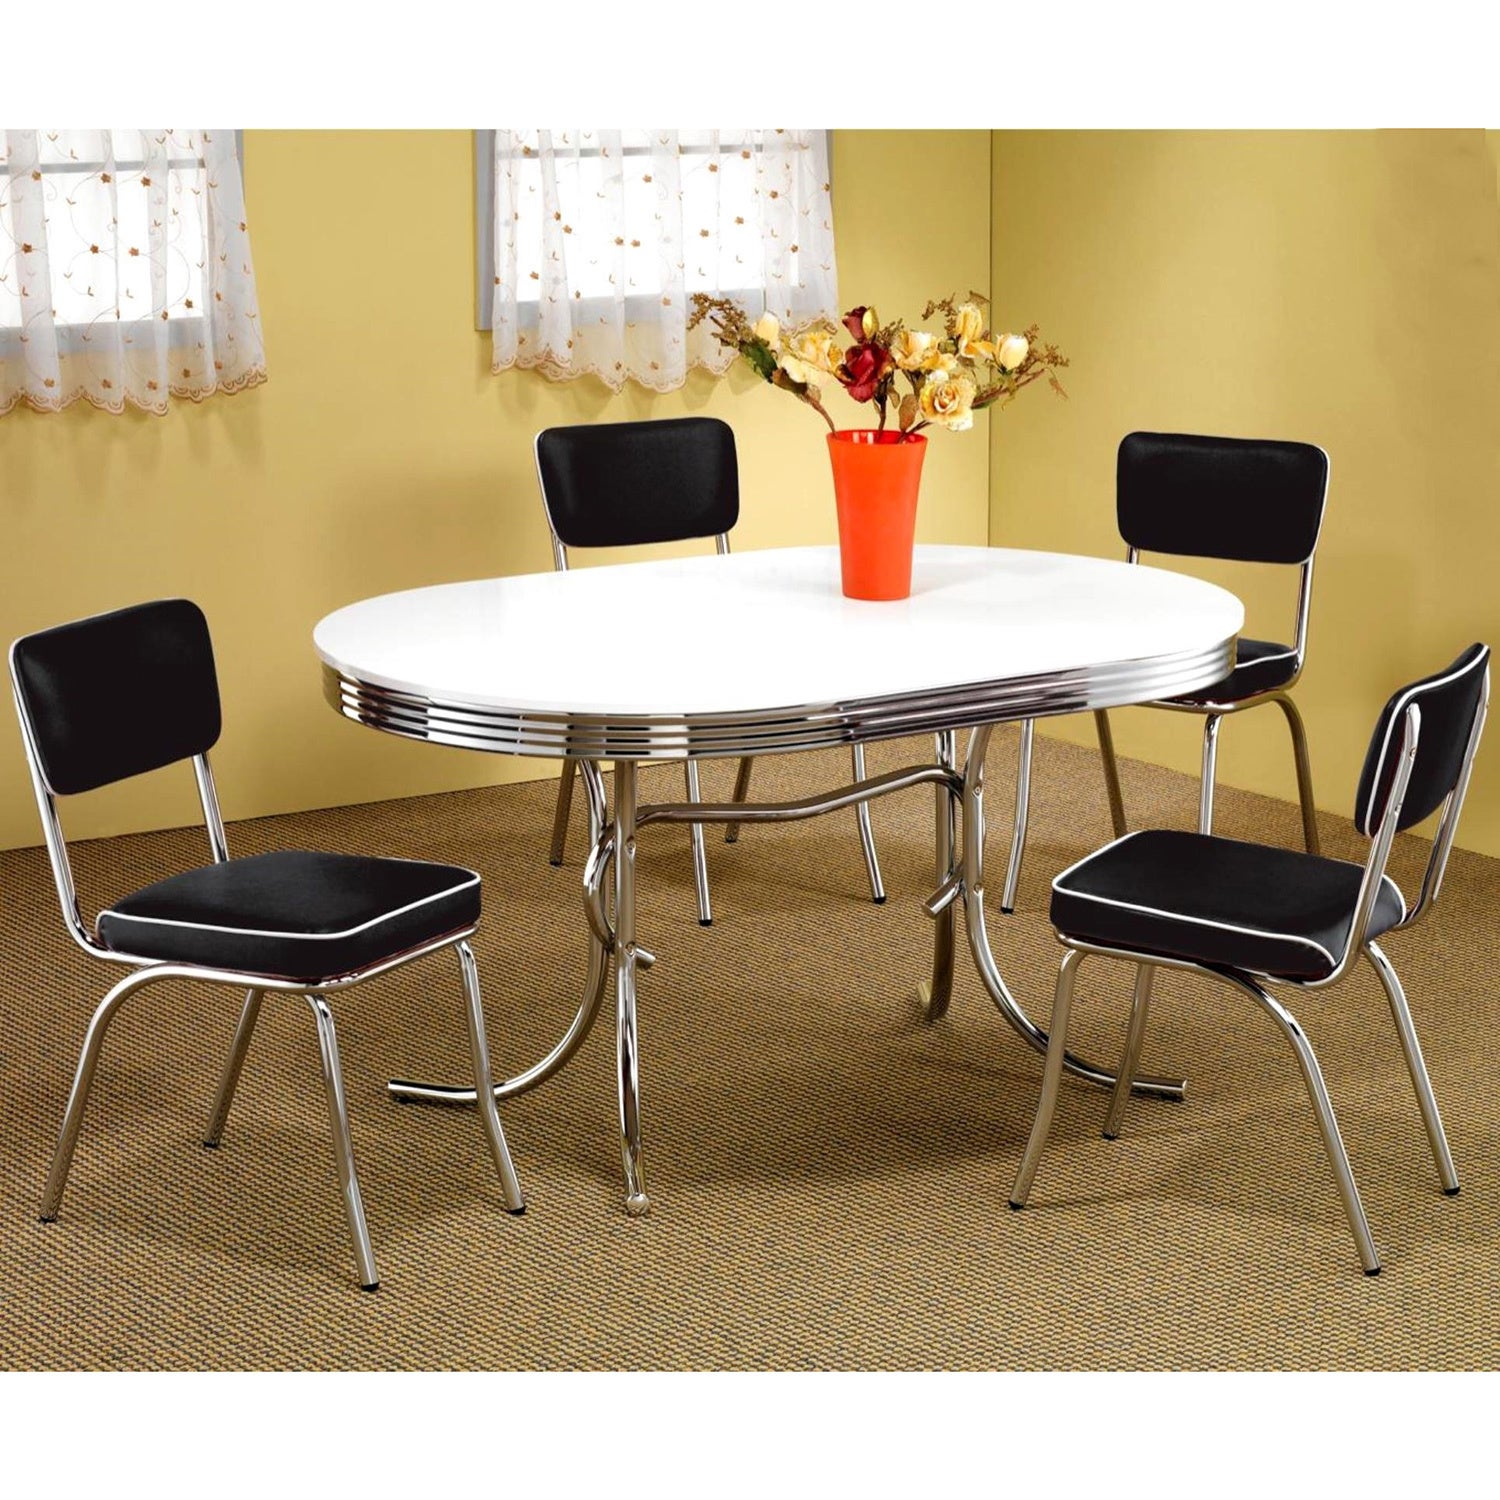 Attrayant Shop Vintage Nostalgic Bistro Design Chrome Base Dining Set   Free Shipping  Today   Overstock   9616167